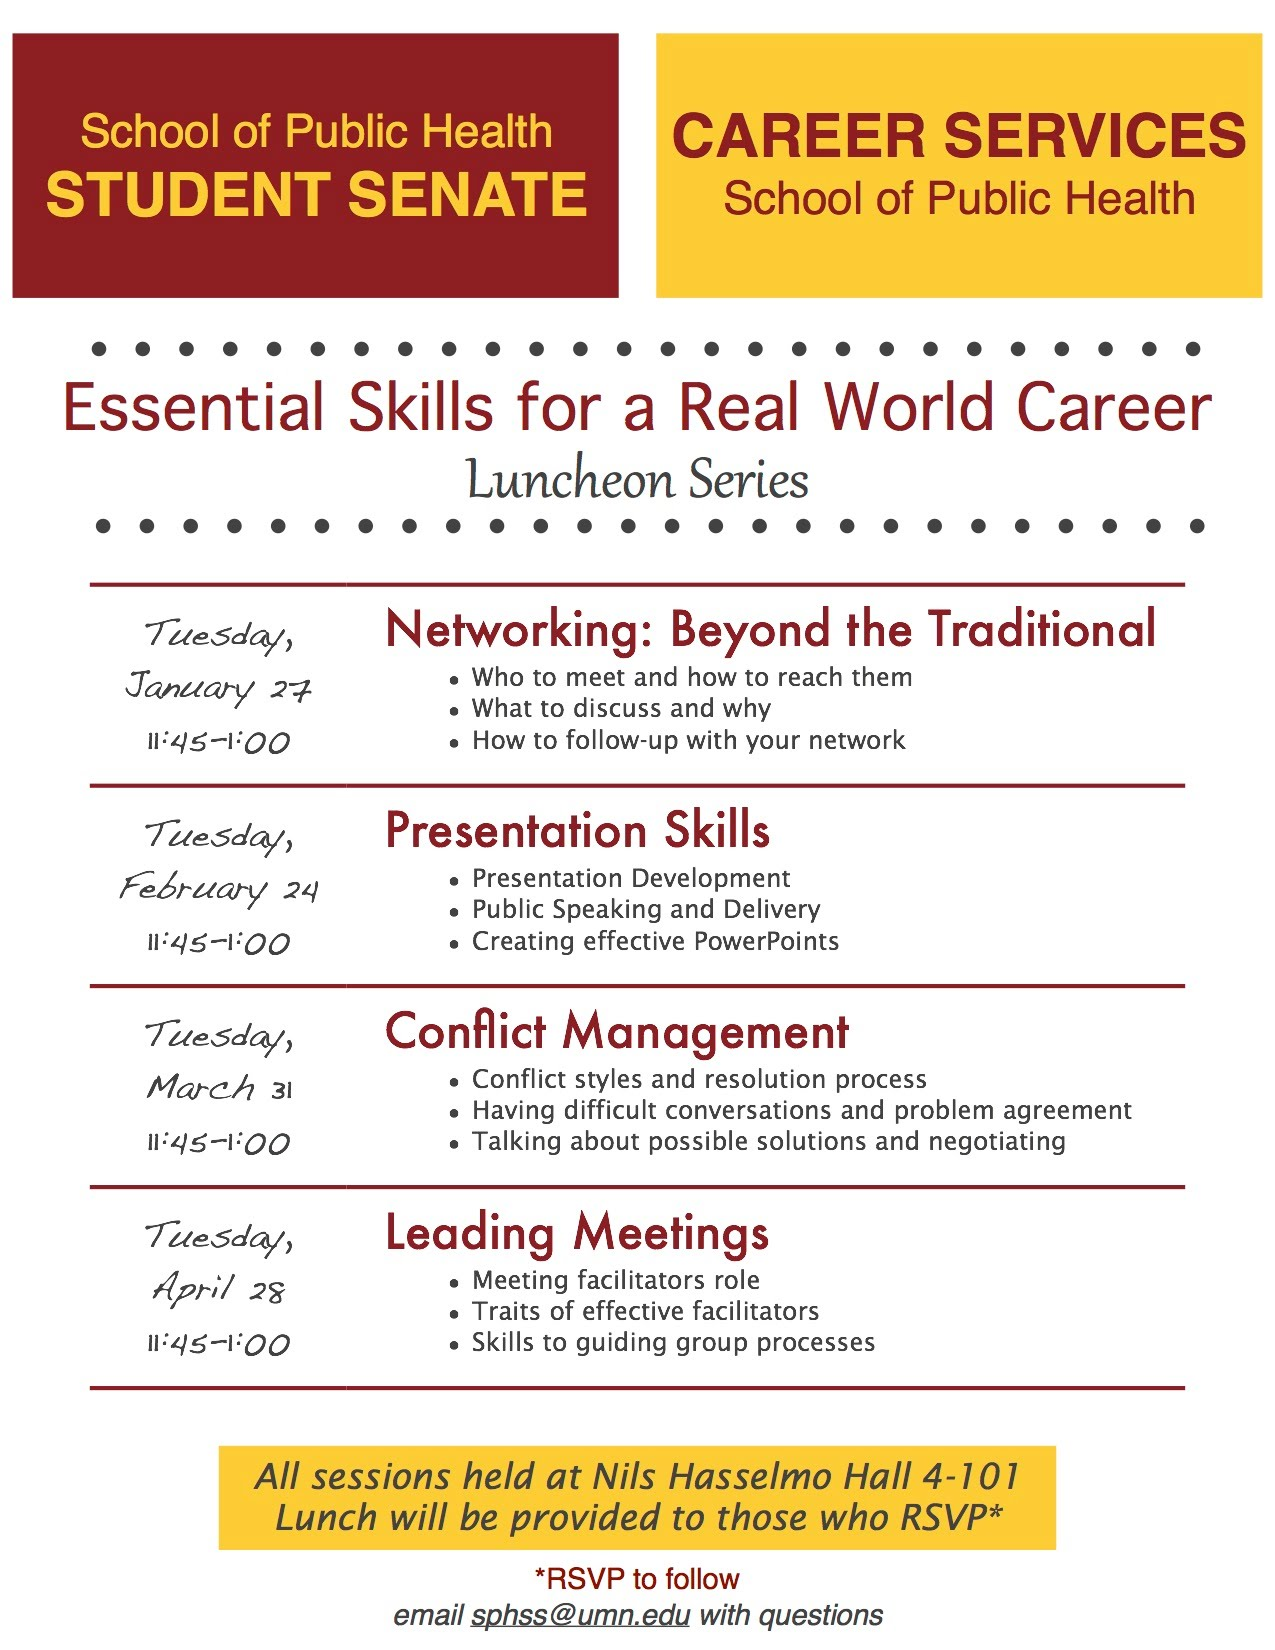 Essential Skills For A Real World Career Luncheon Series